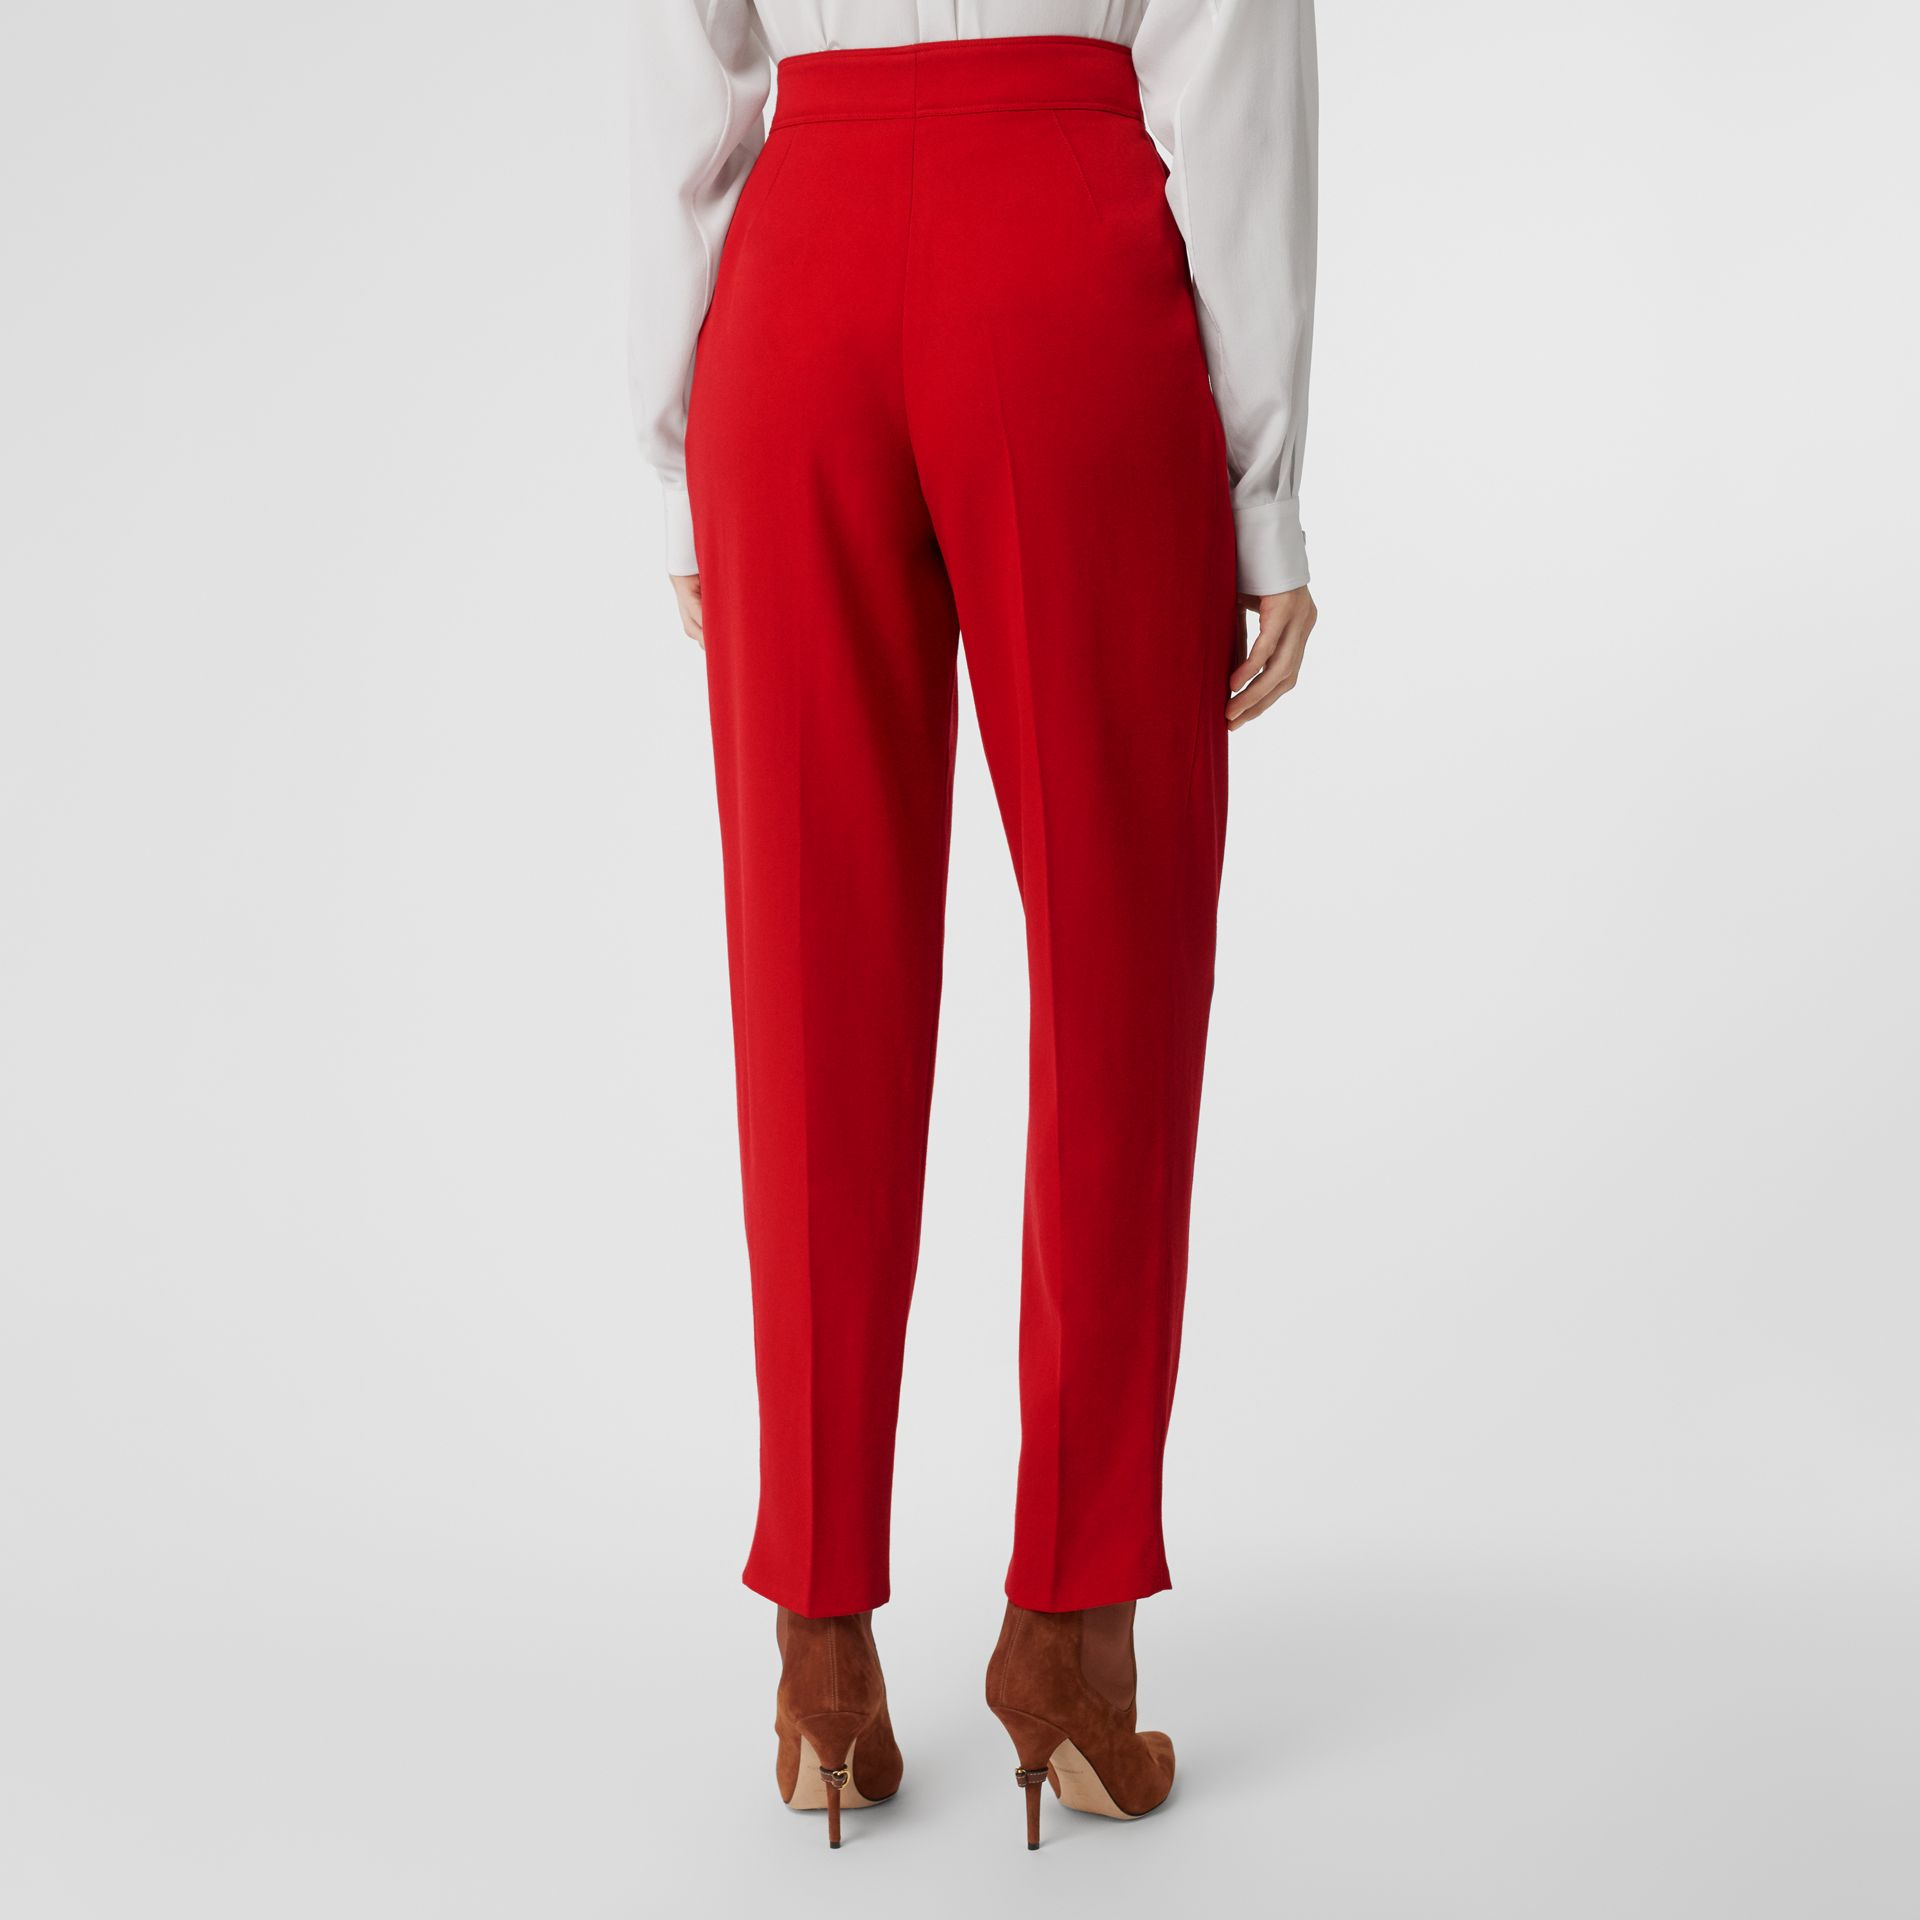 Pleat Detail Wool Tailored Trousers in Bright Red - Women | Burberry United Kingdom - gallery image 1